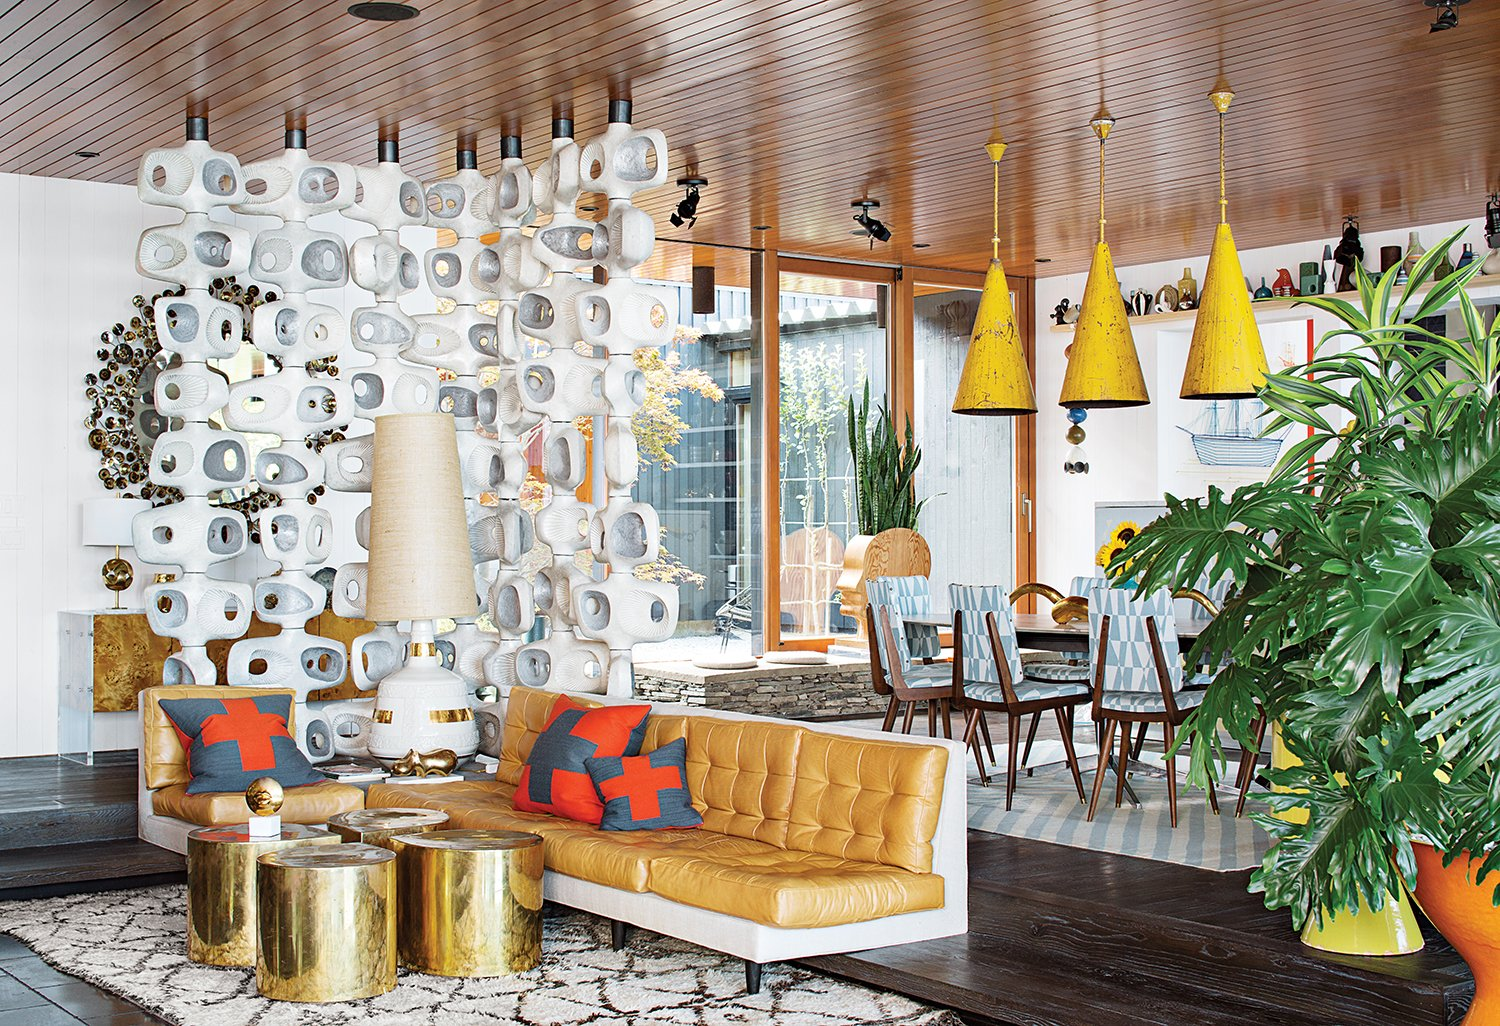 127+ Inspiring Interior Ideas by Dwell from Jonathan Adler and Simon Doonan Go Trippy Contemporary on Shelter Island